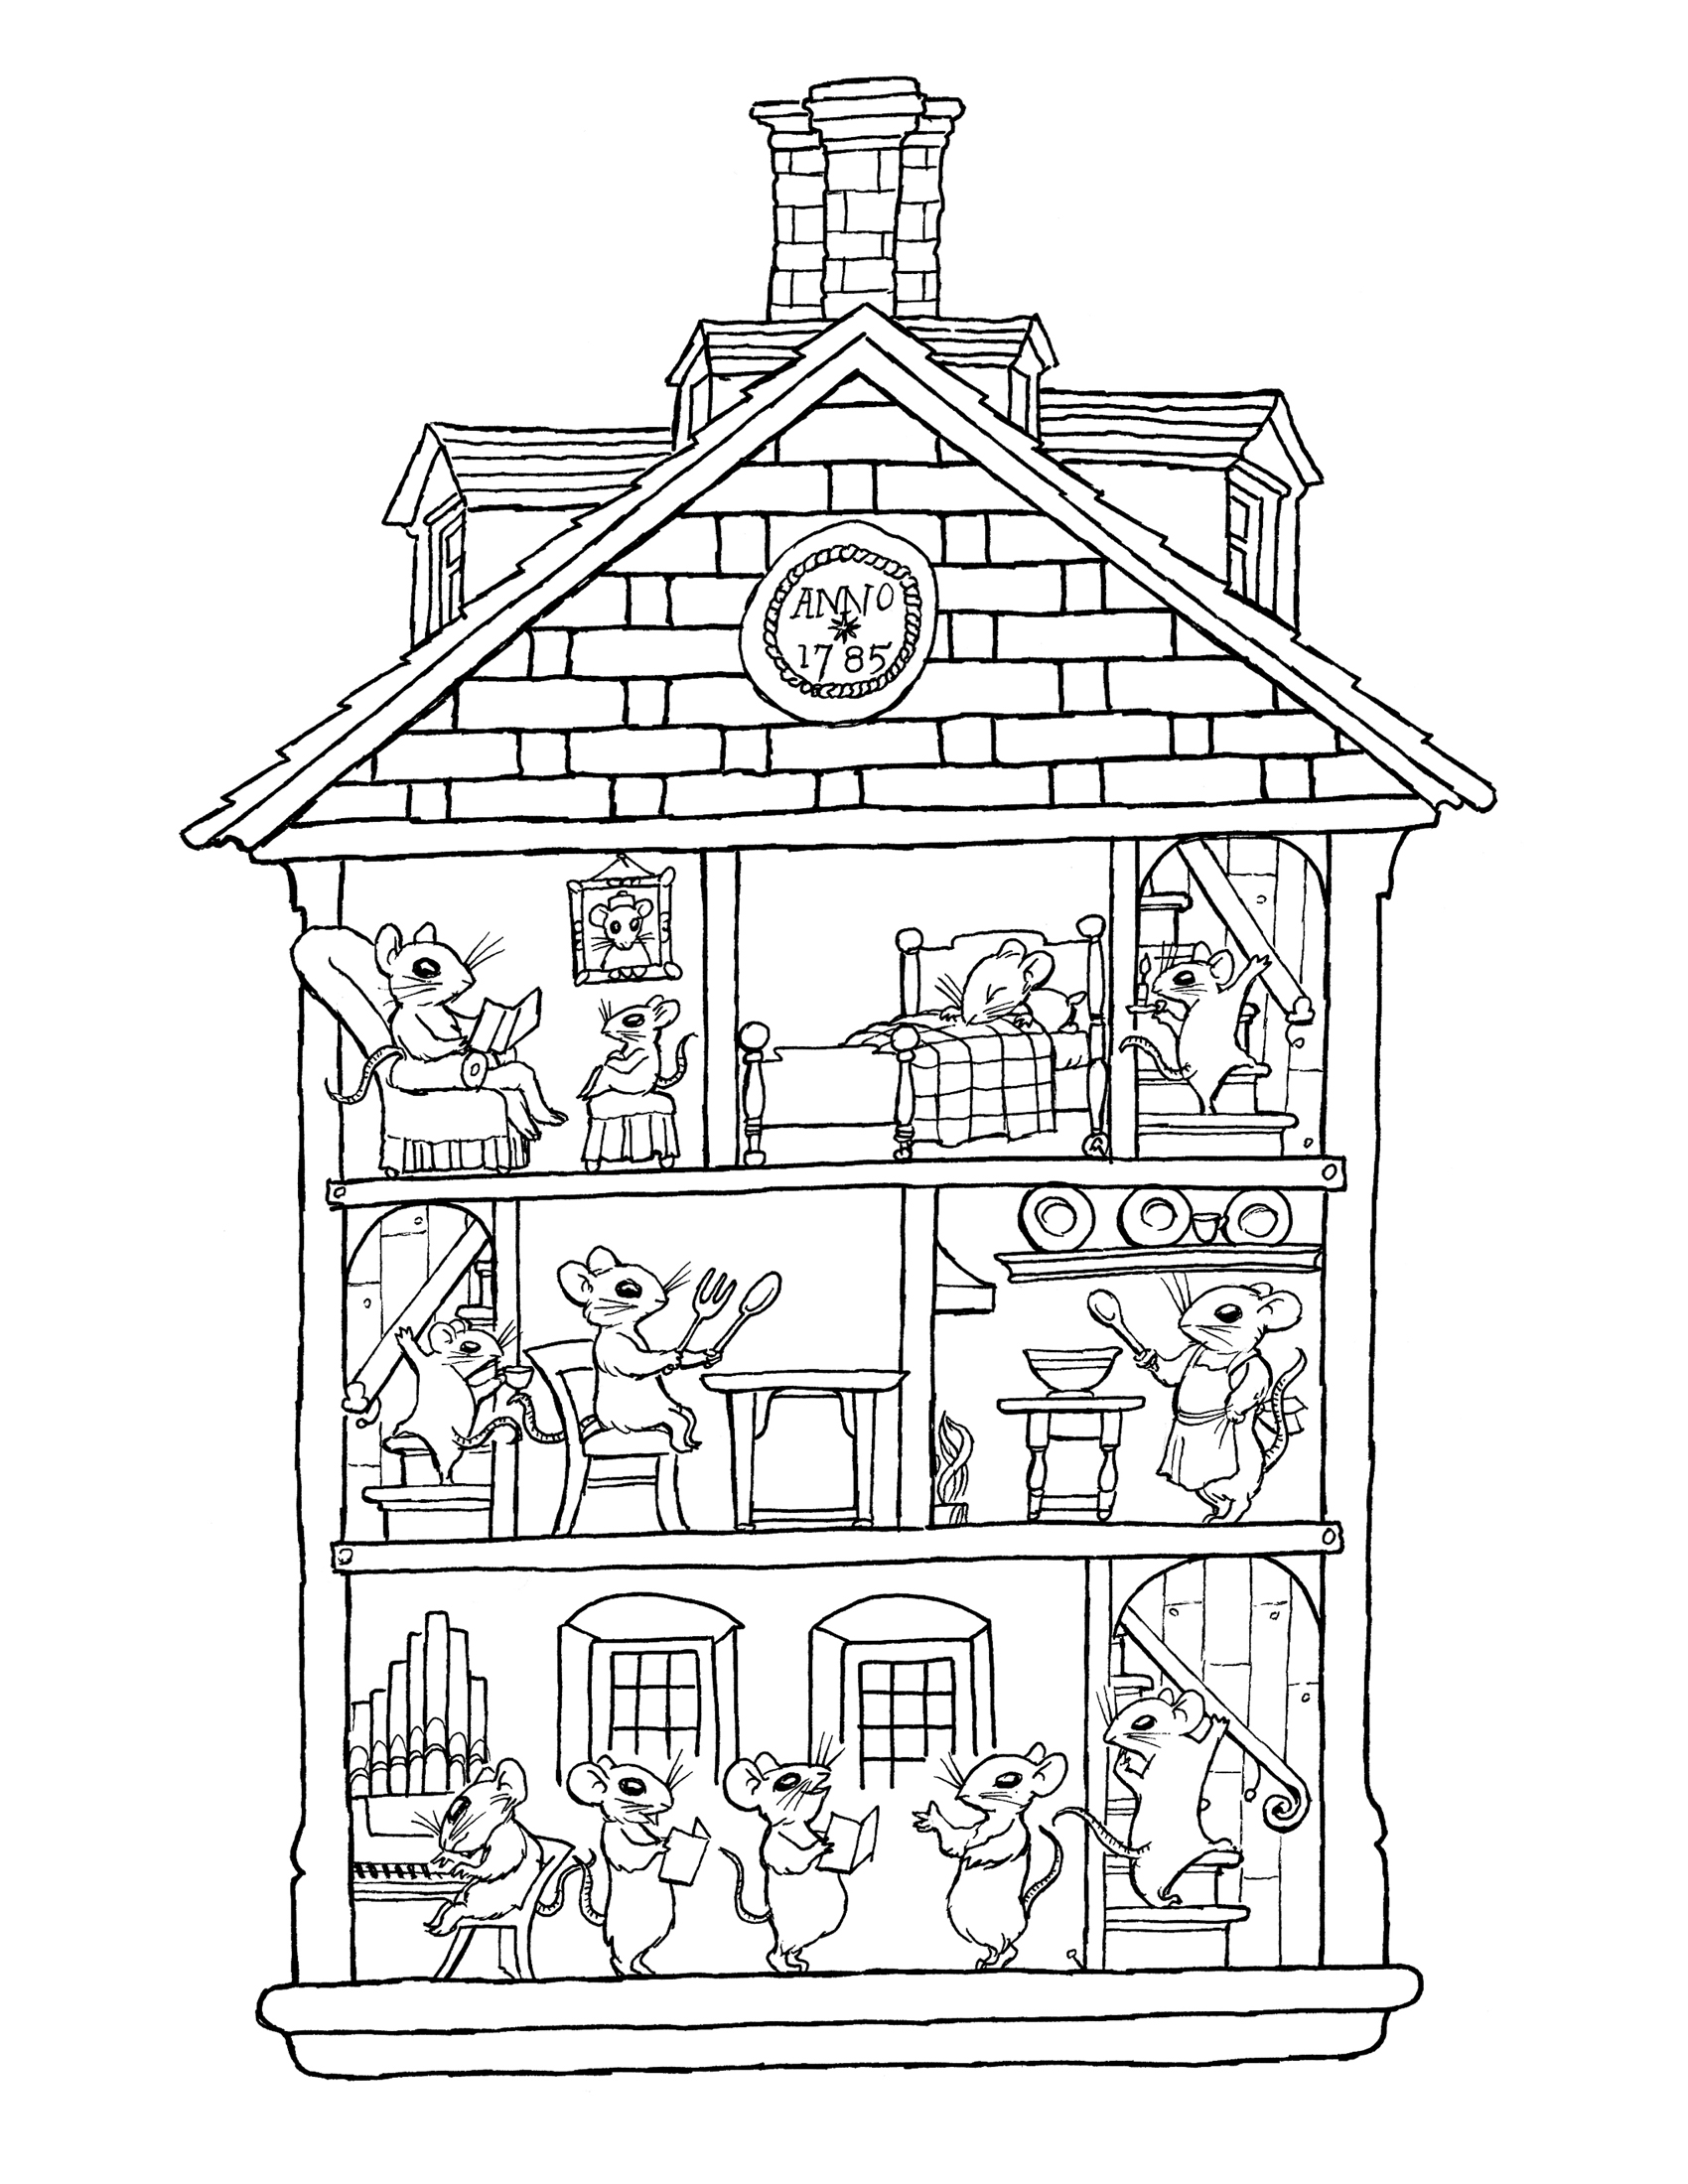 Coloring pages house rooms google twit